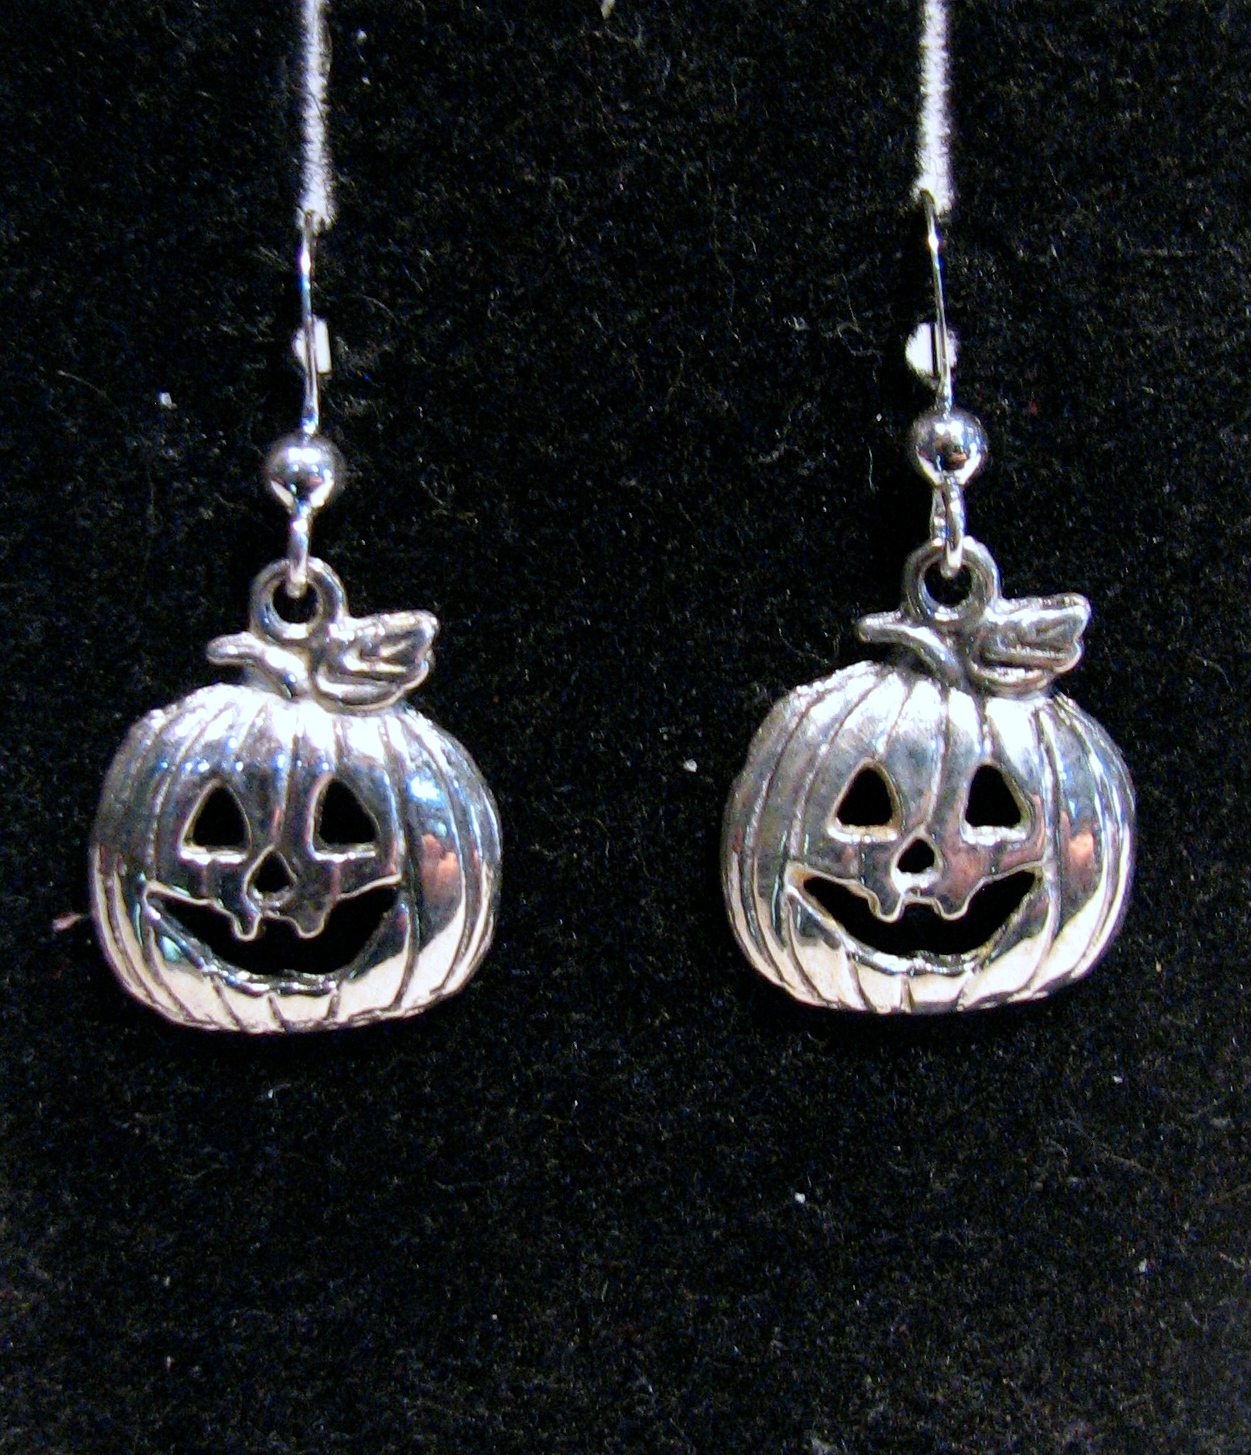 Jack Lantern earrings